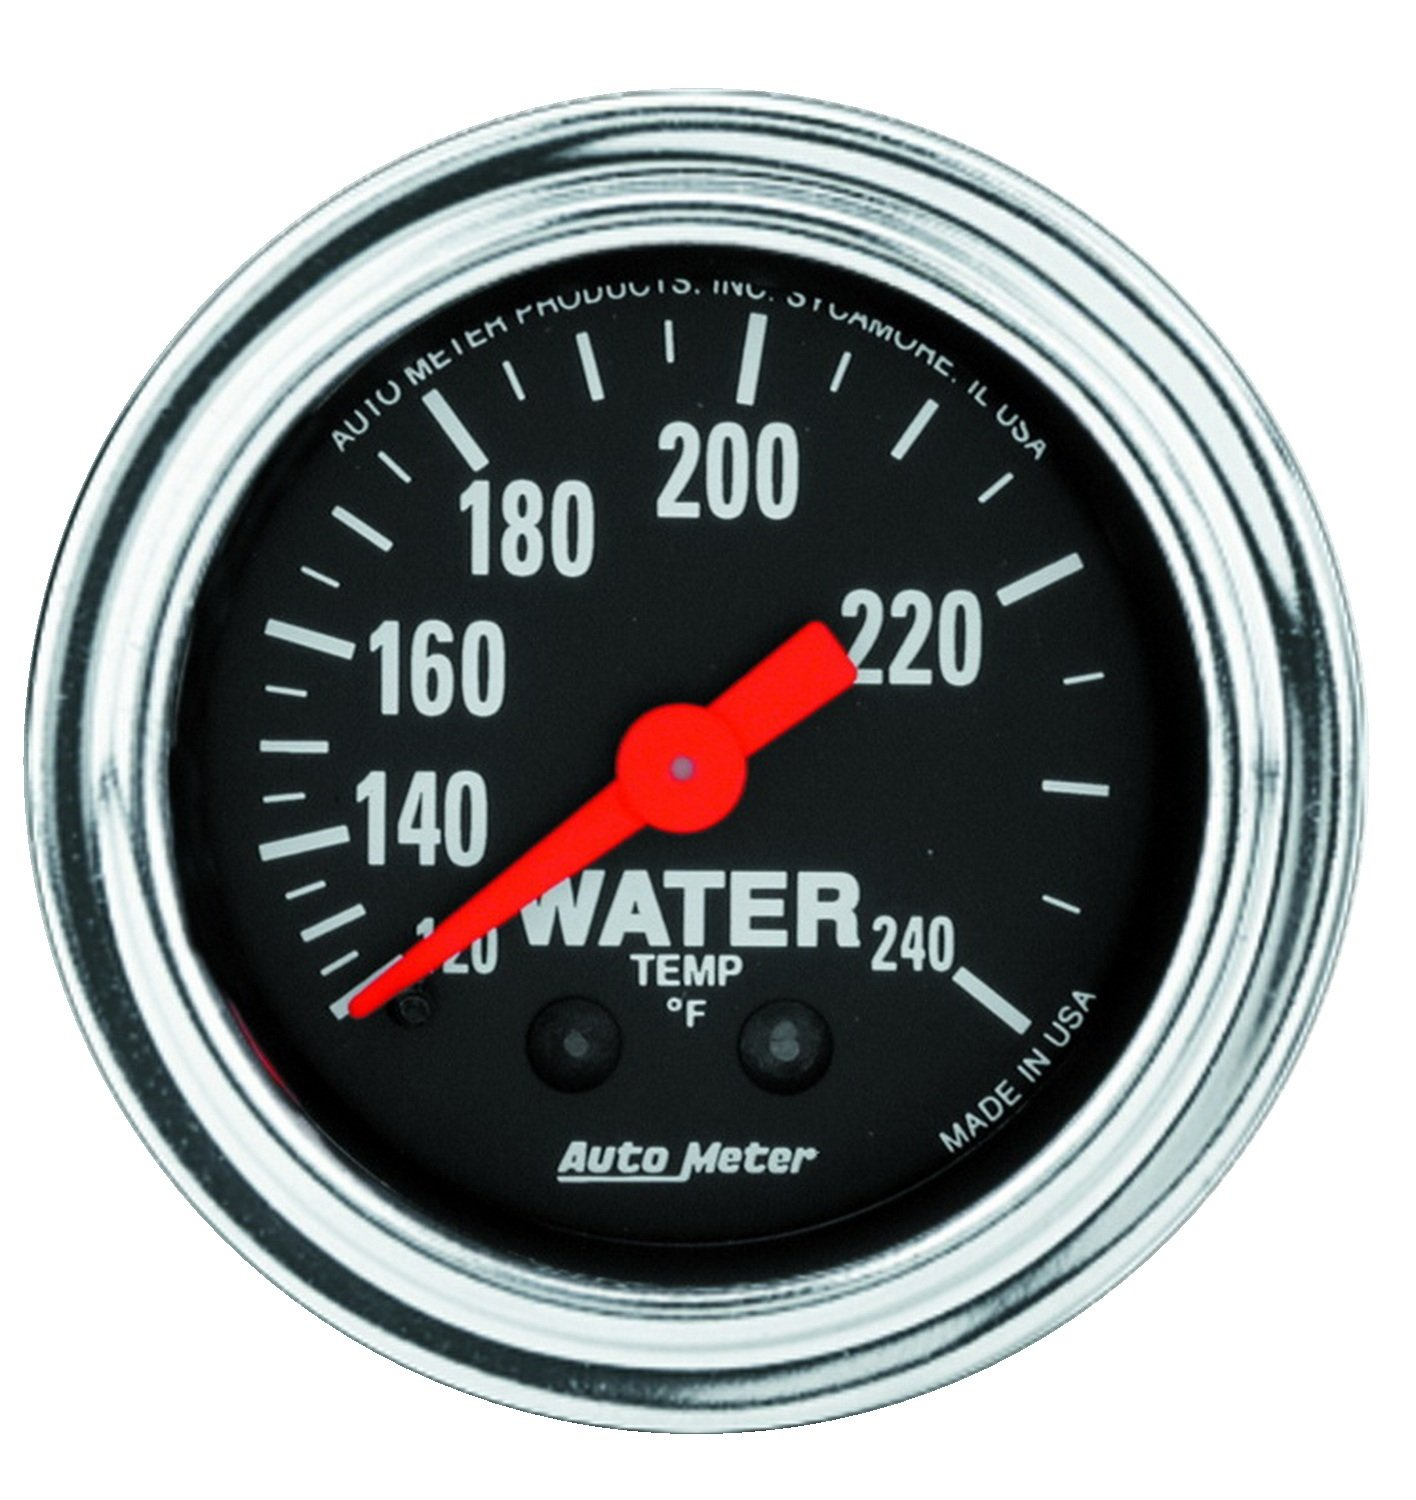 AUTO METER 2433 Traditional Chrome Mechanical Water Temperature Gauge by AUTO METER